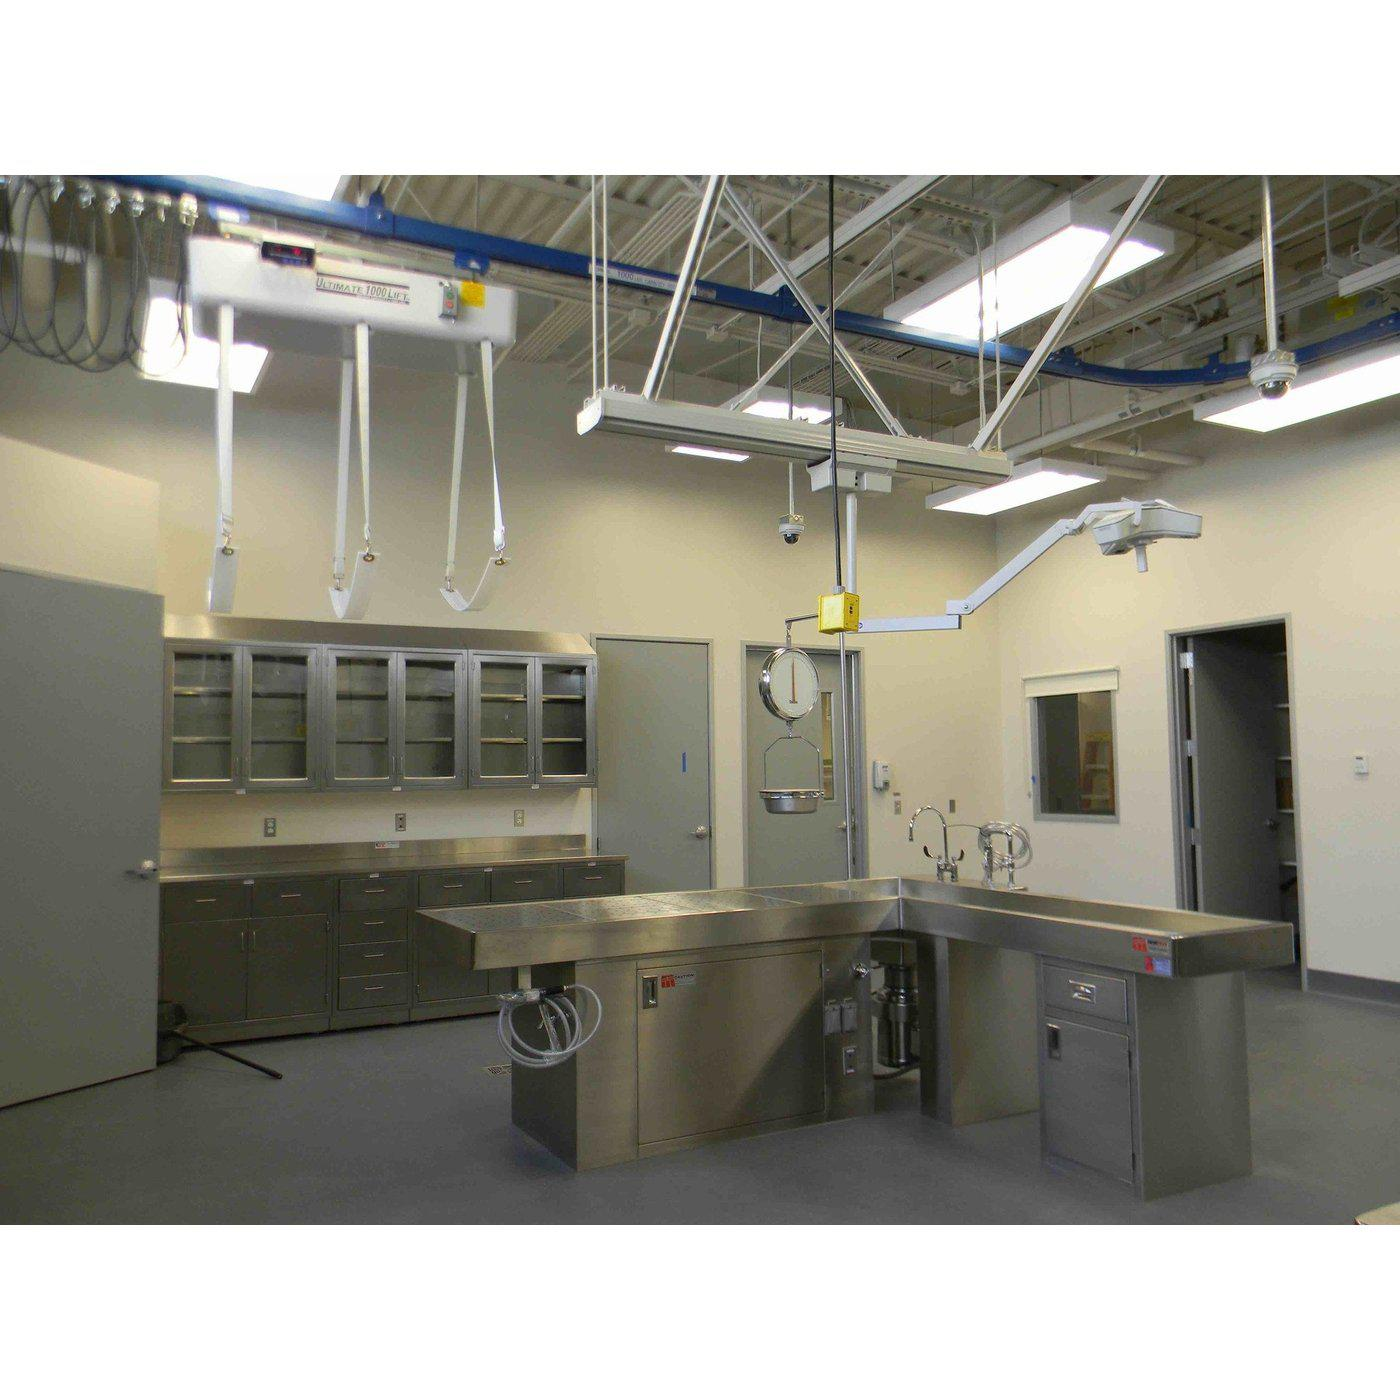 L-Shaped Autopsy Table-Pathology Grossing Stations-Mortech Manufacturing Company Inc. Quality Stainless Steel Autopsy, Morgue, Funeral Home, Necropsy, Veterinary / Anatomy, Dissection Equipment and Accessories